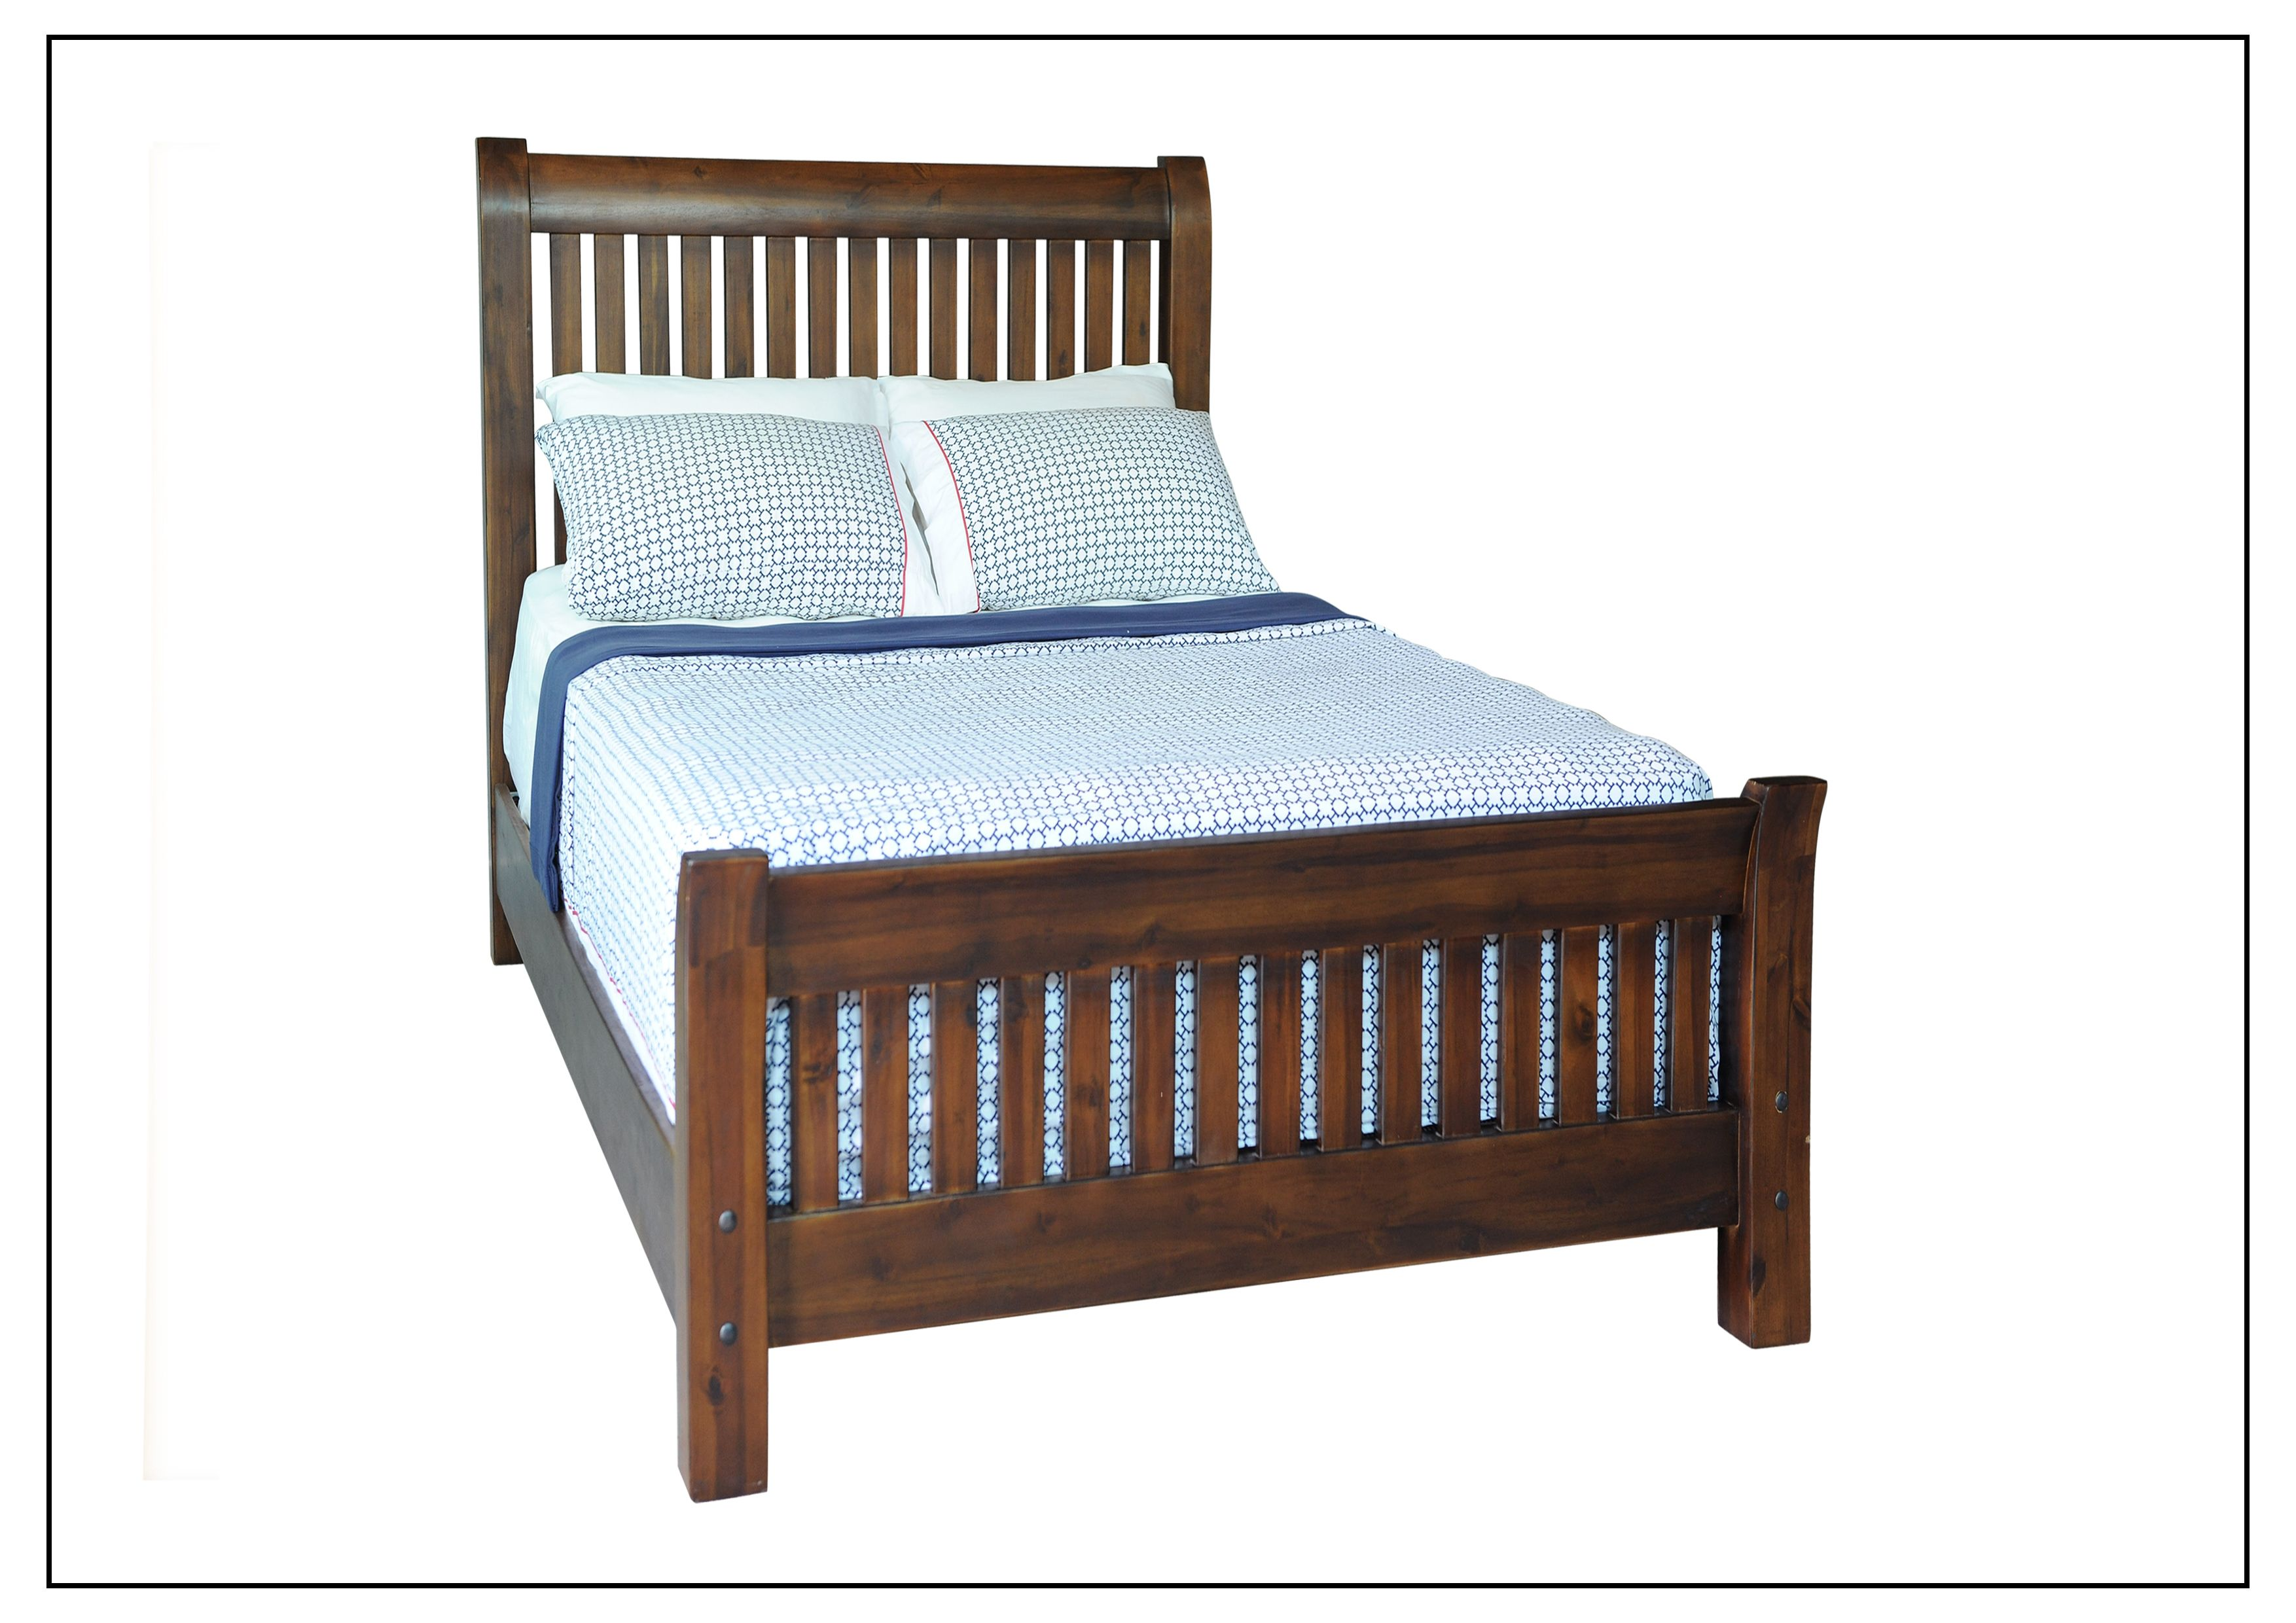 TIBSSKSB007 Sleigh Slat King Single Bed Head Height